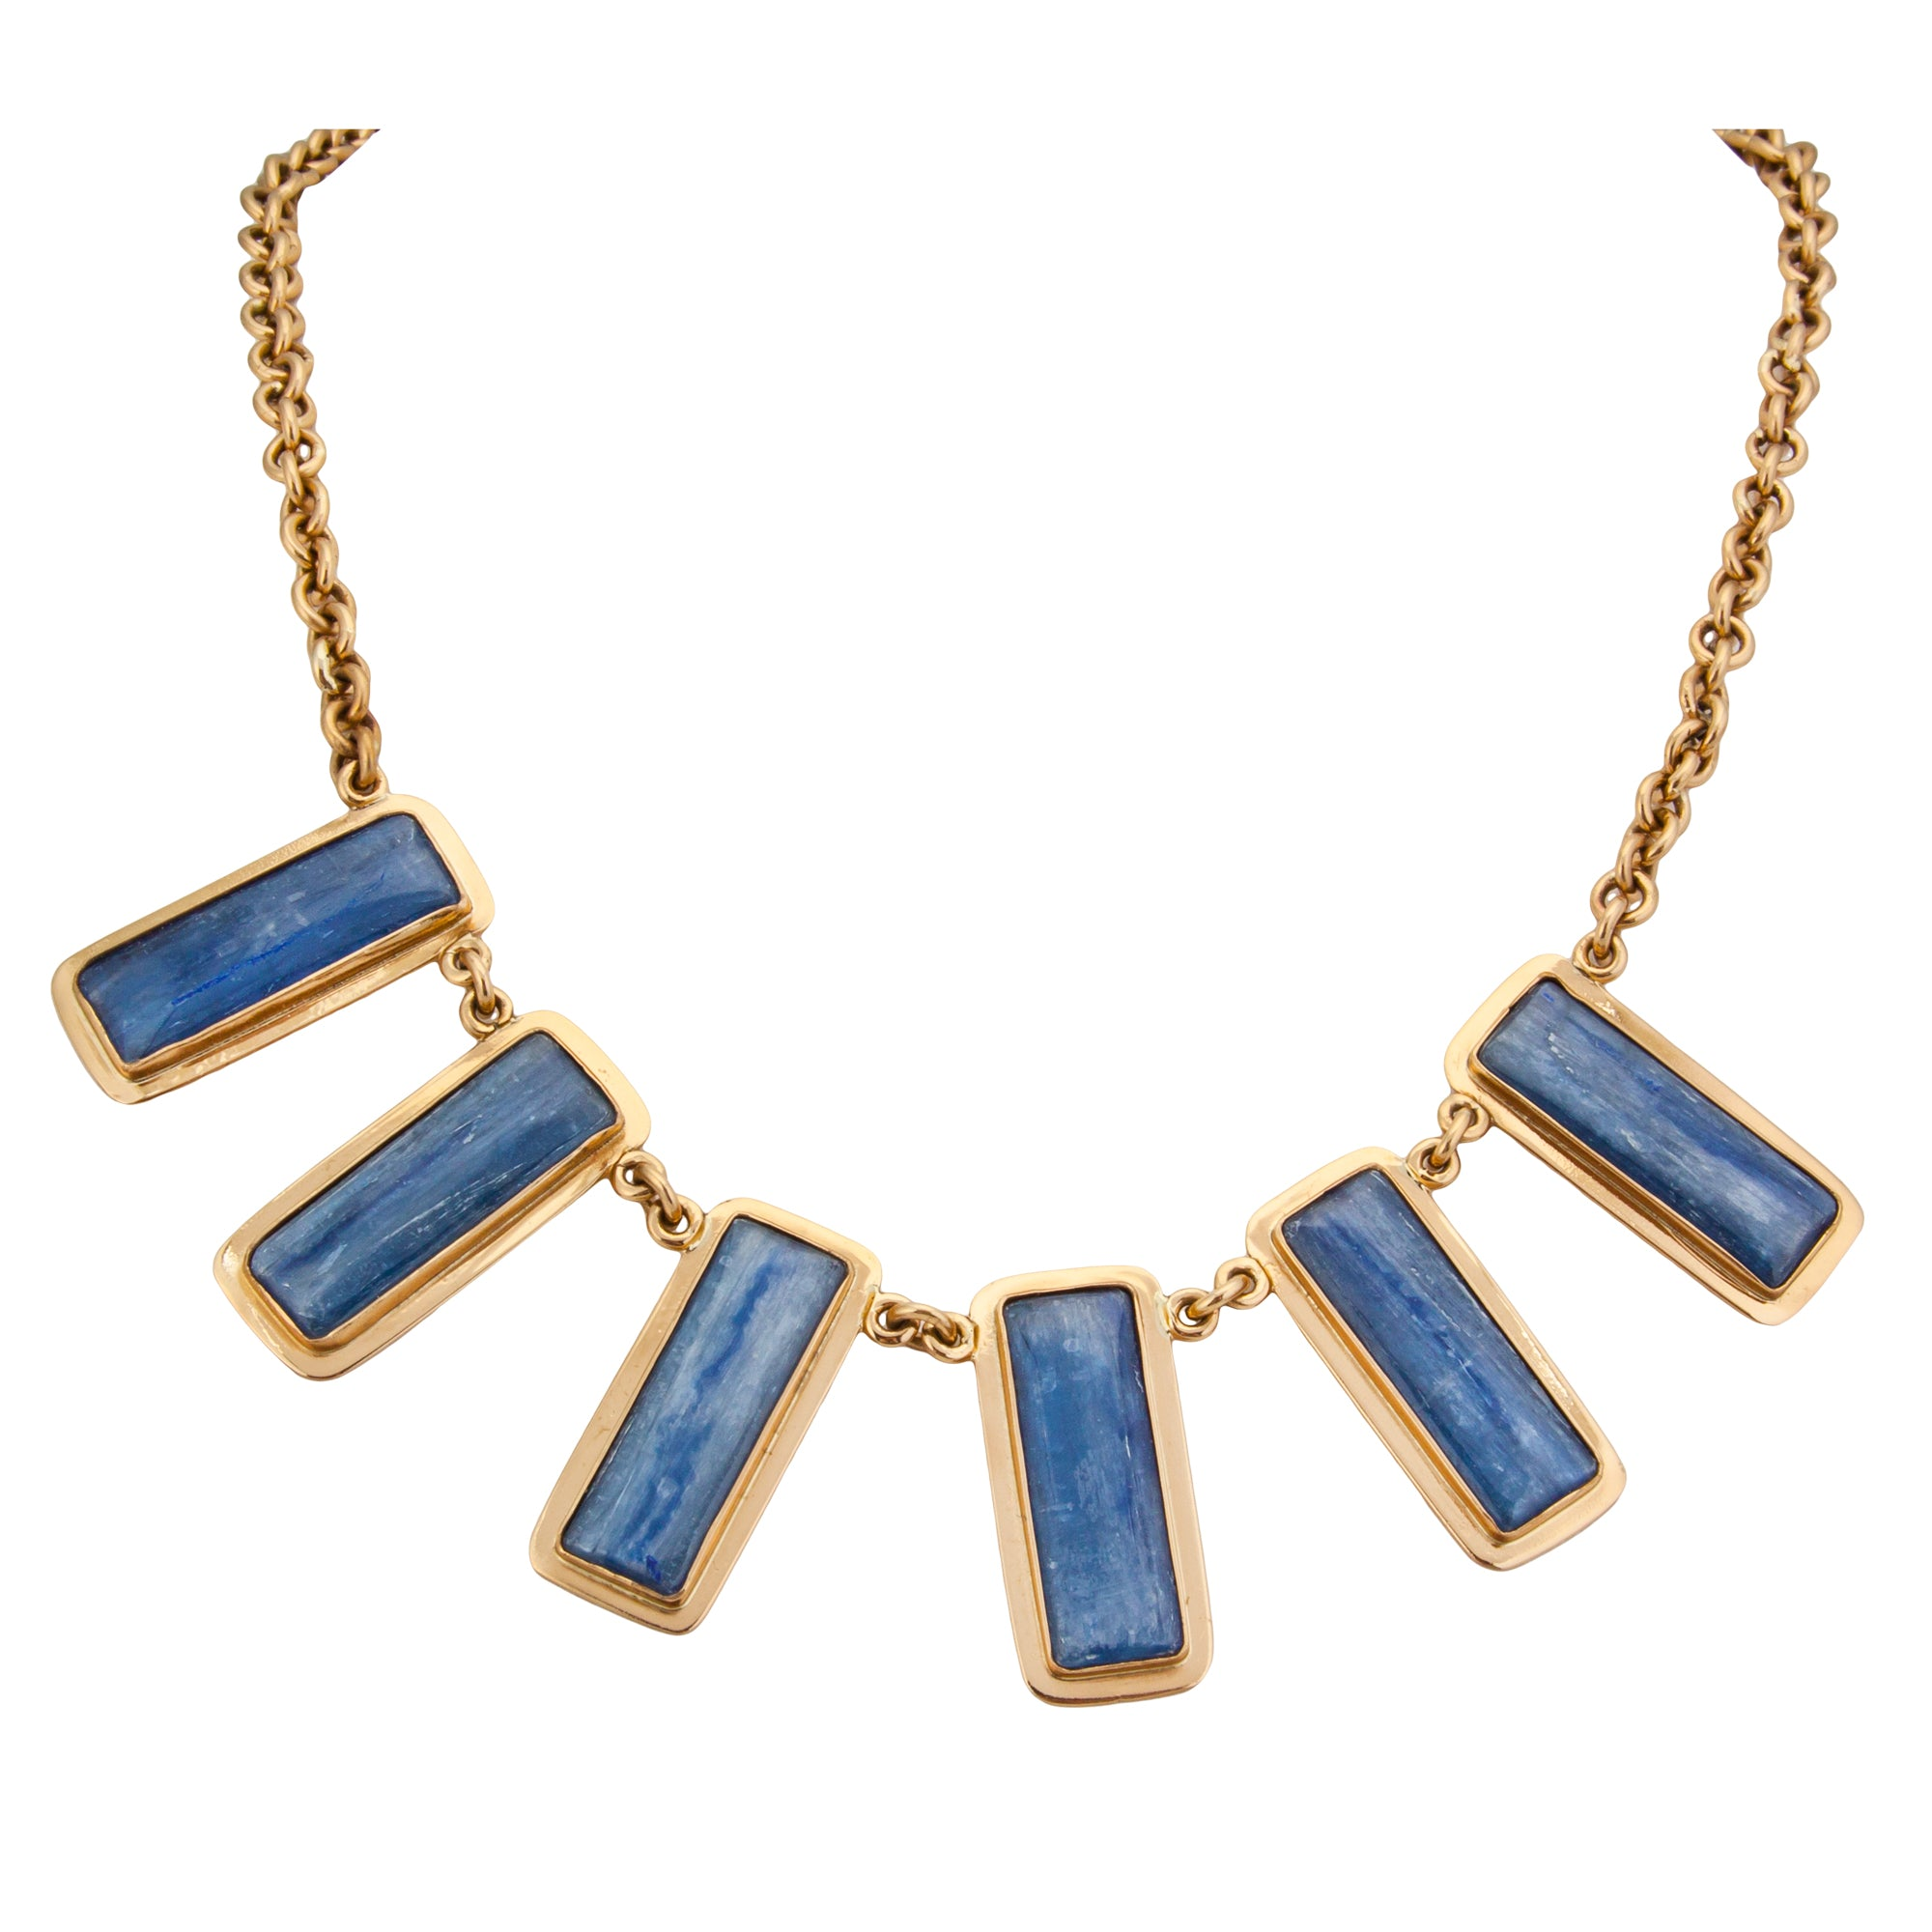 Alchemia Kyanite Necklace with Edge Detail | Charles Albert Jewelry